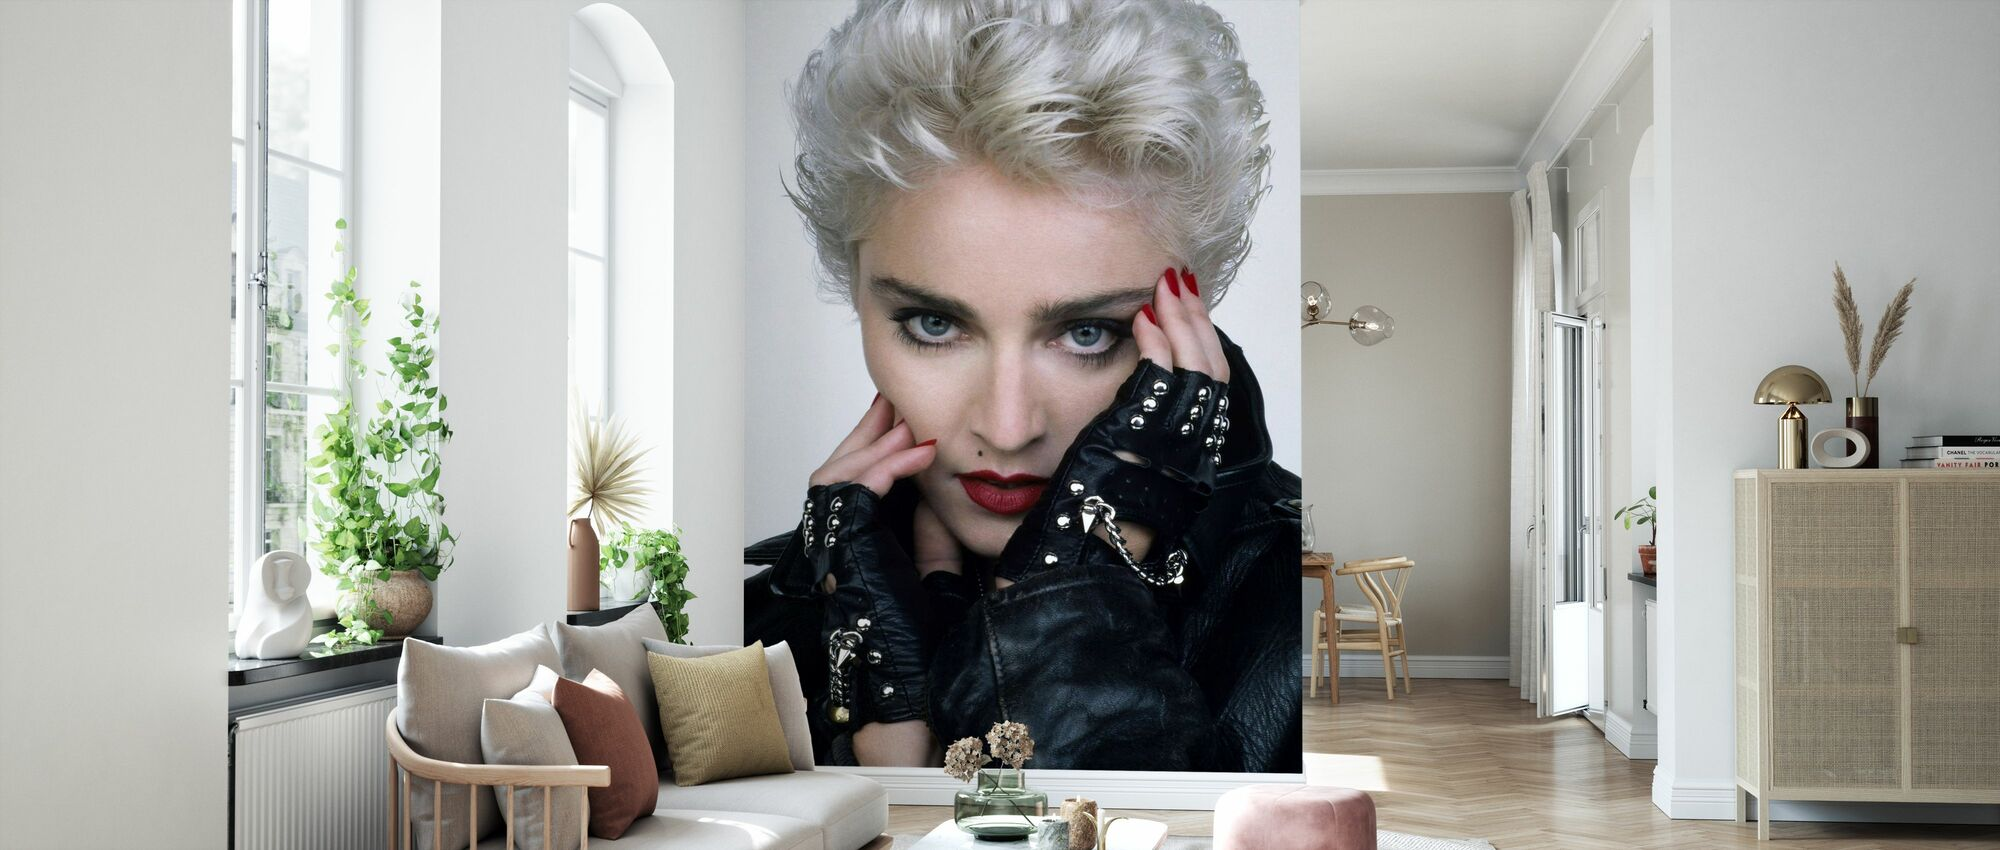 Whos that Girl - Madonna - Wallpaper - Living Room